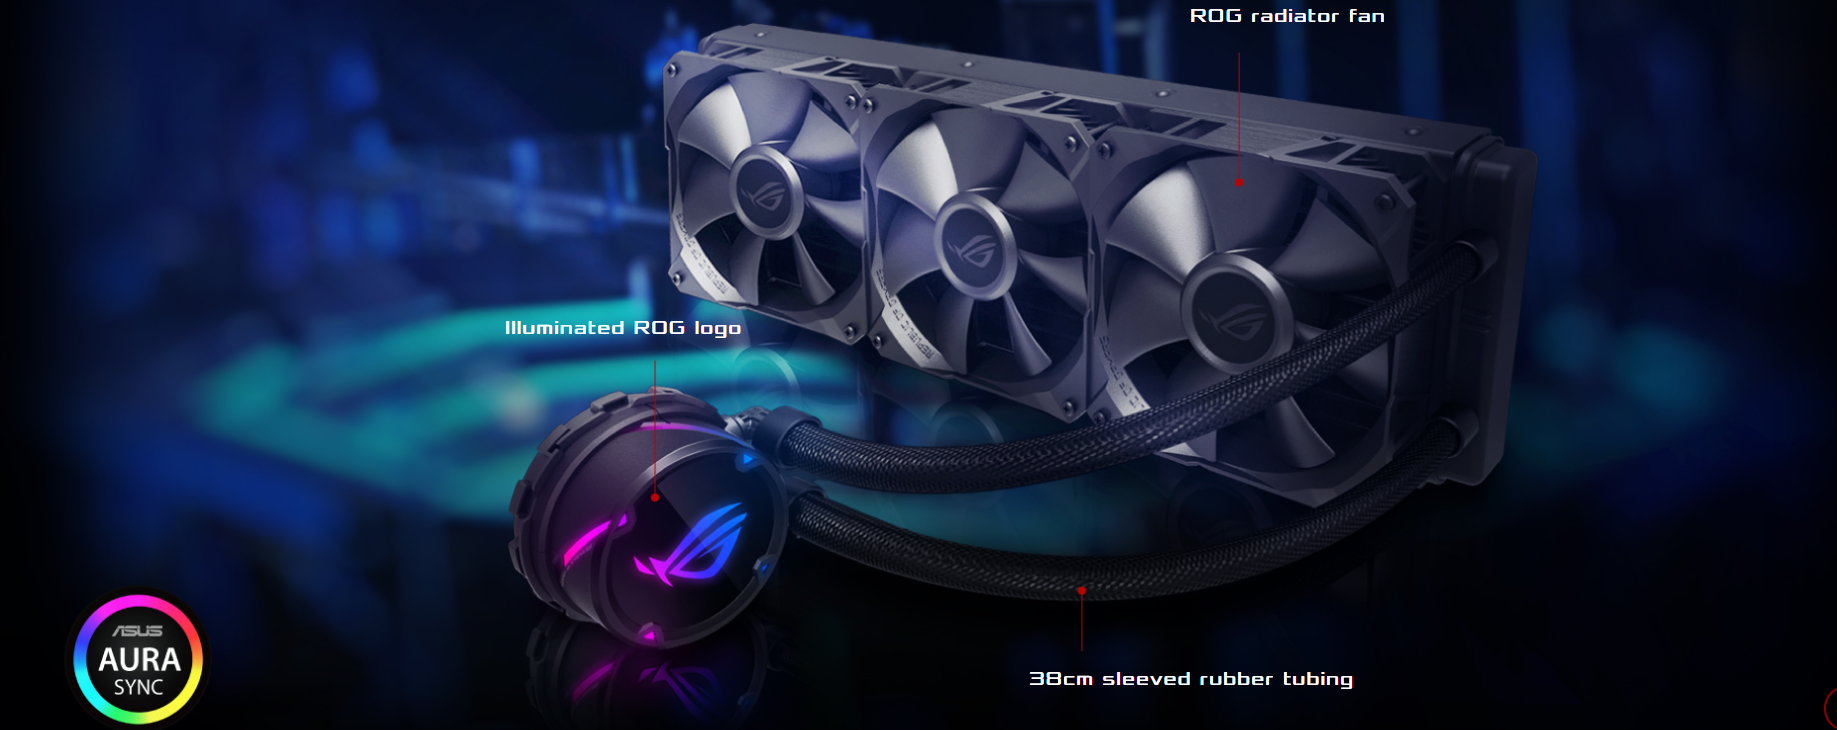 Asus Releases Rog Strix Lc 360 Aio Cpu Cooler Gnd Tech